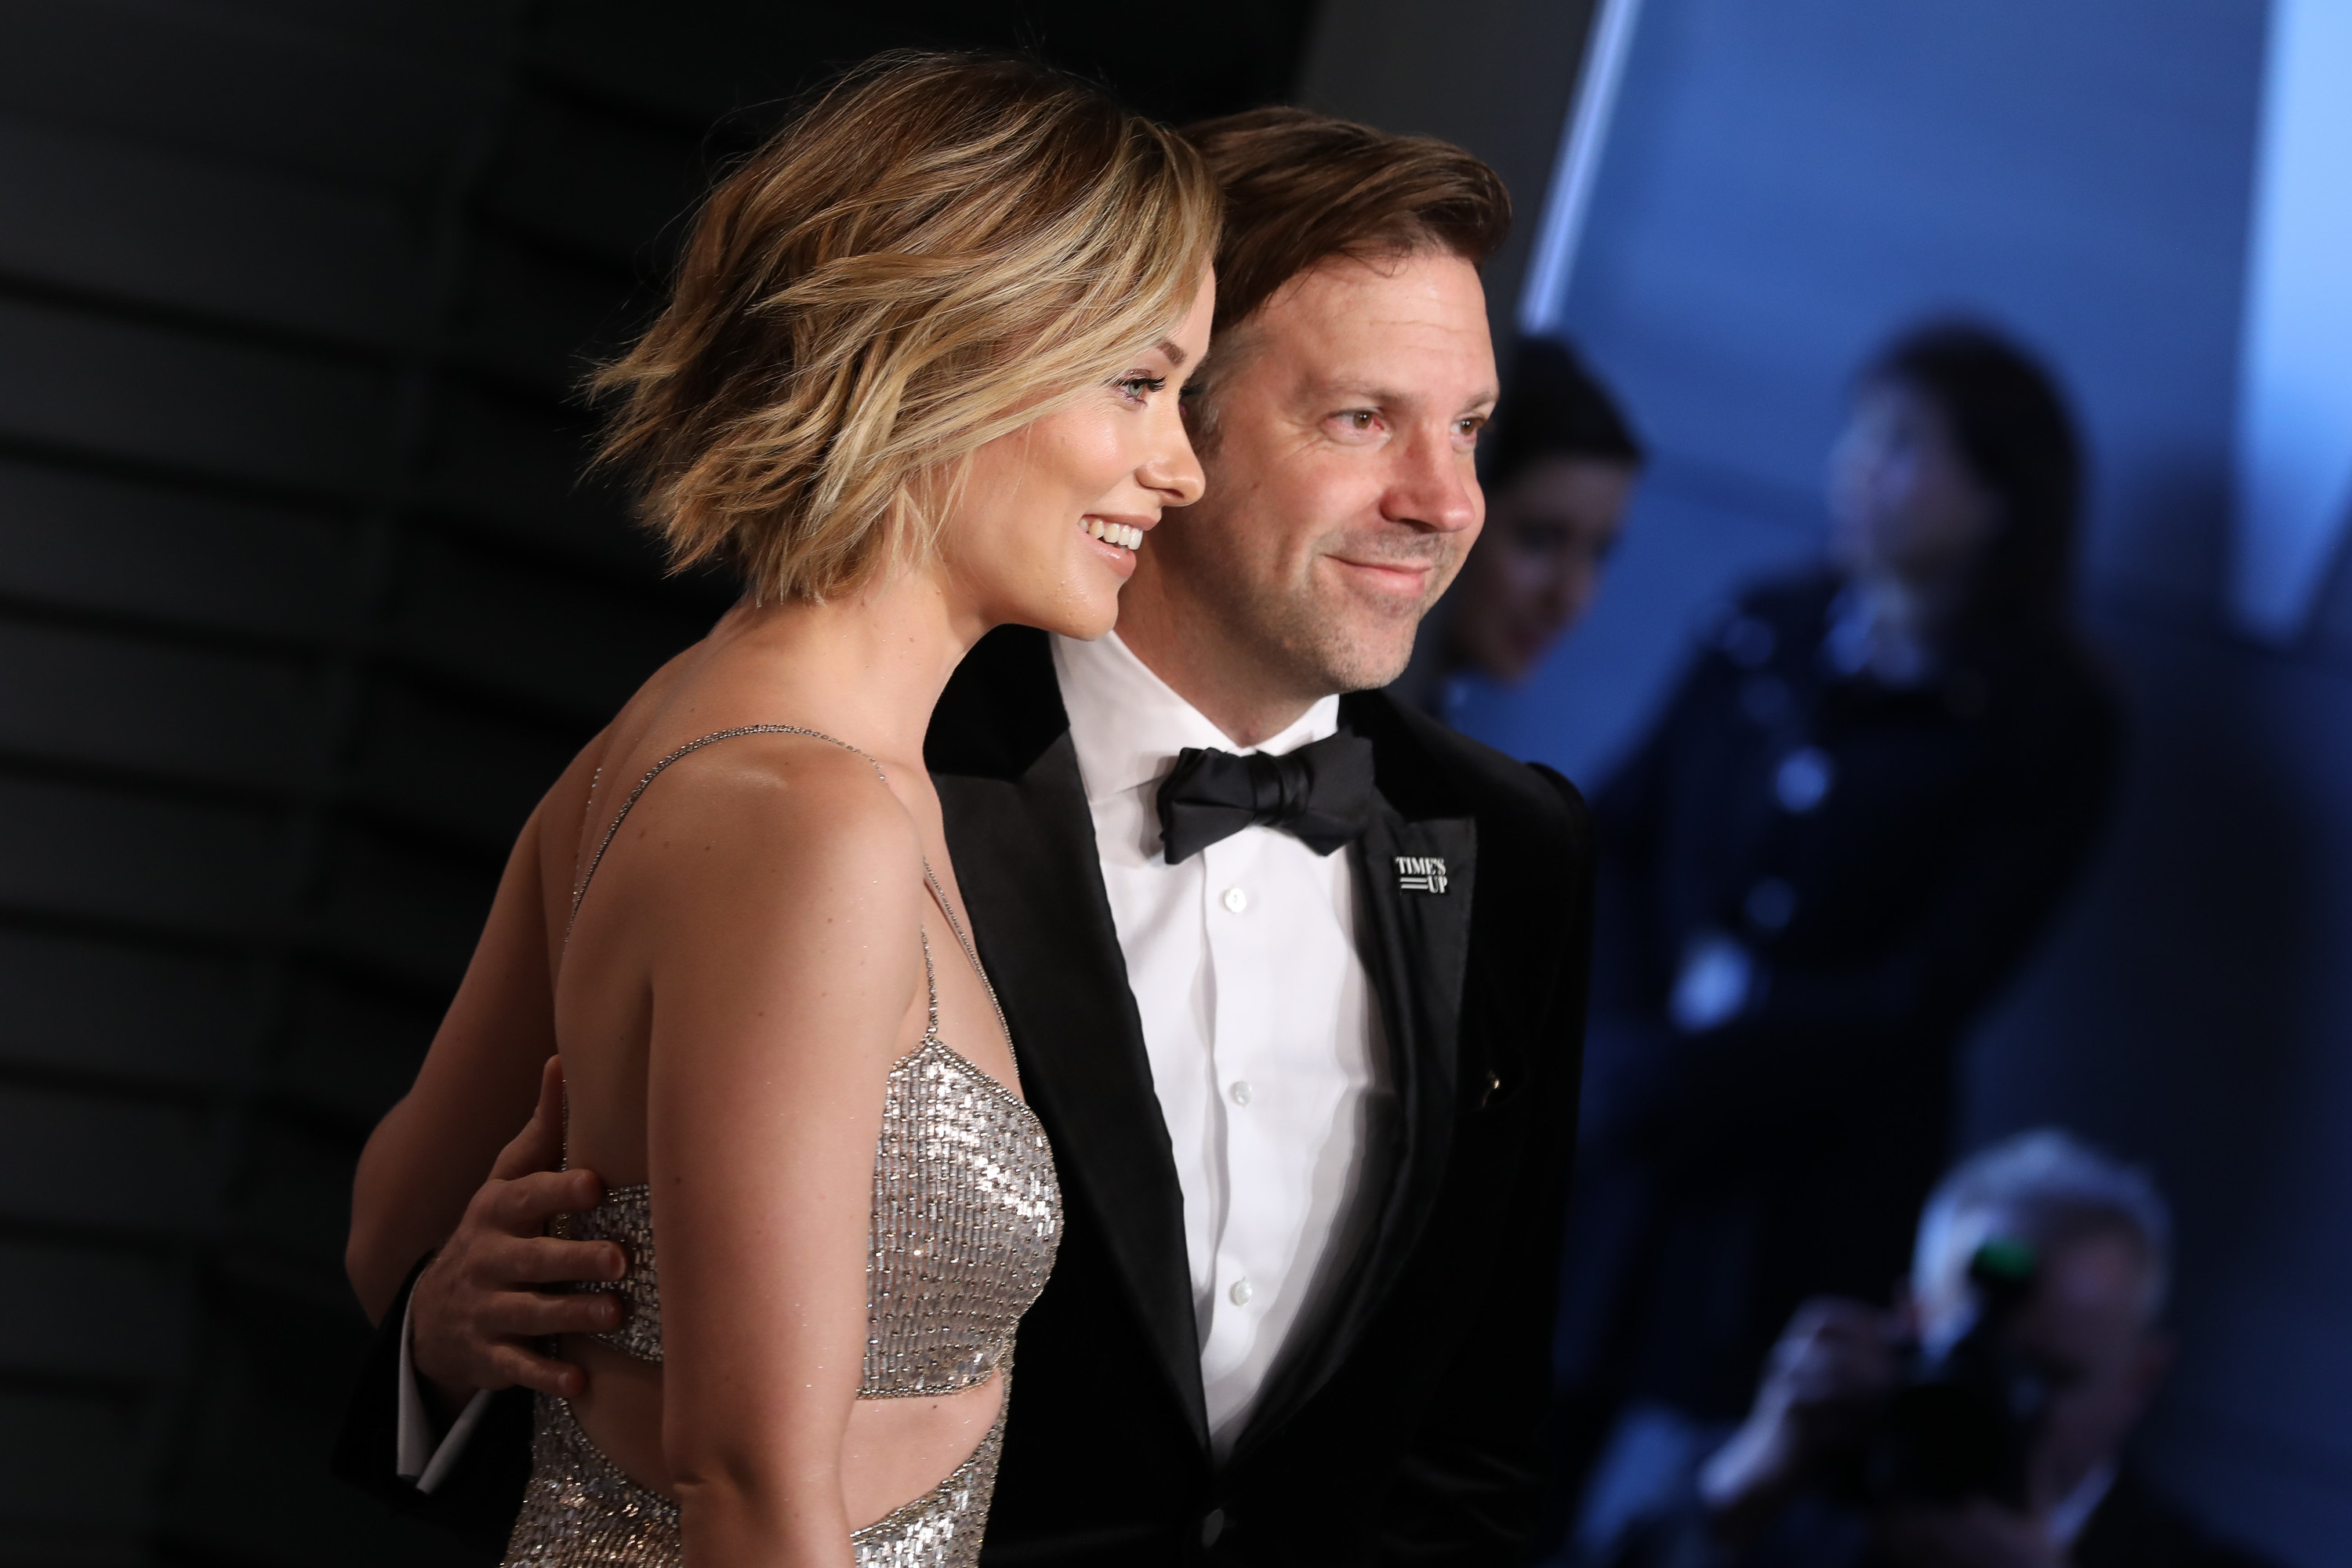 Olivia Wilde and Jason Sudeikis at the Vanity Fair Oscar Party in 2018